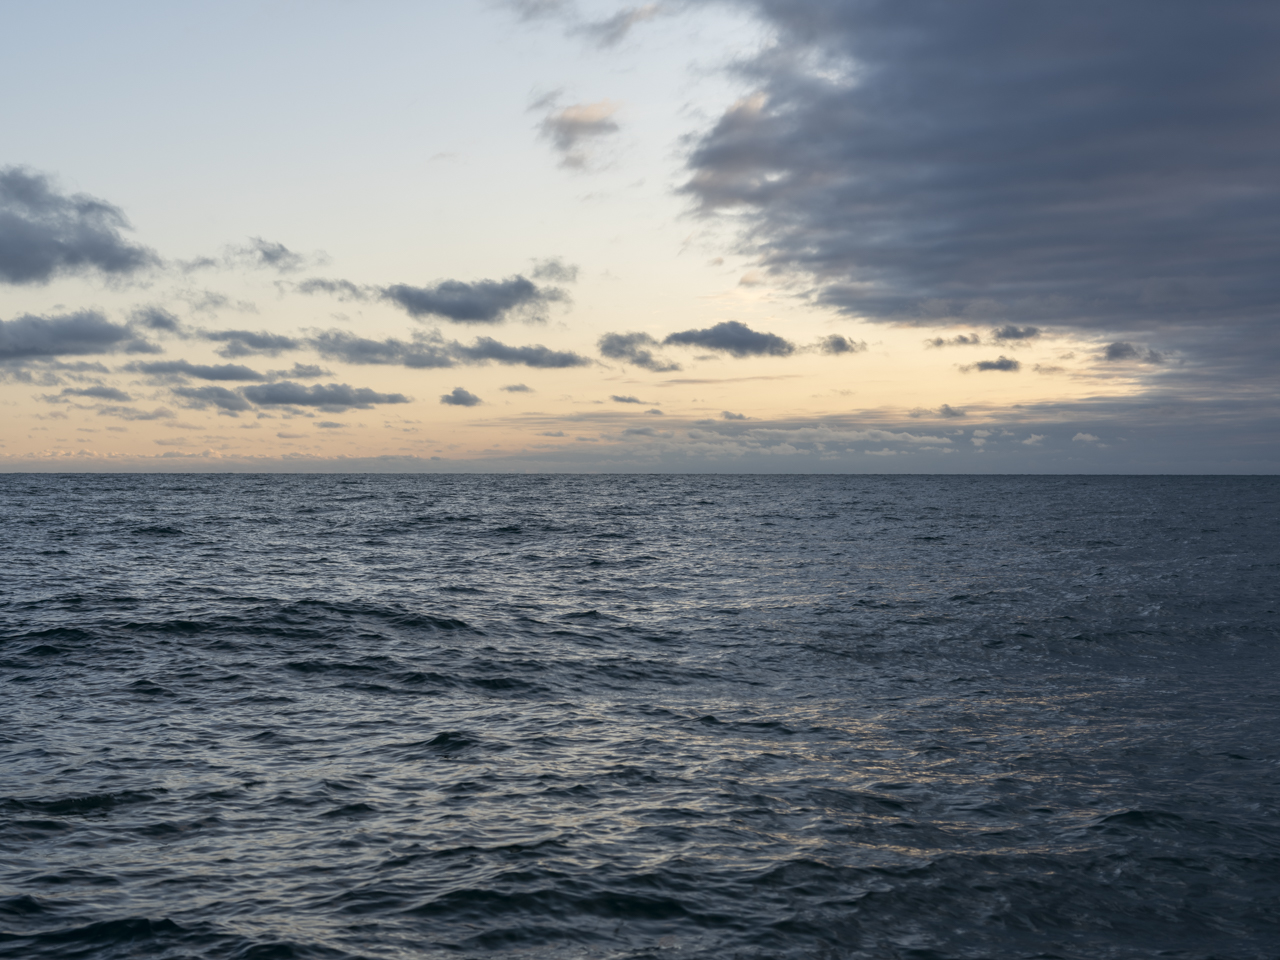 early morning light breaks over the blue waves of Lake Michigan